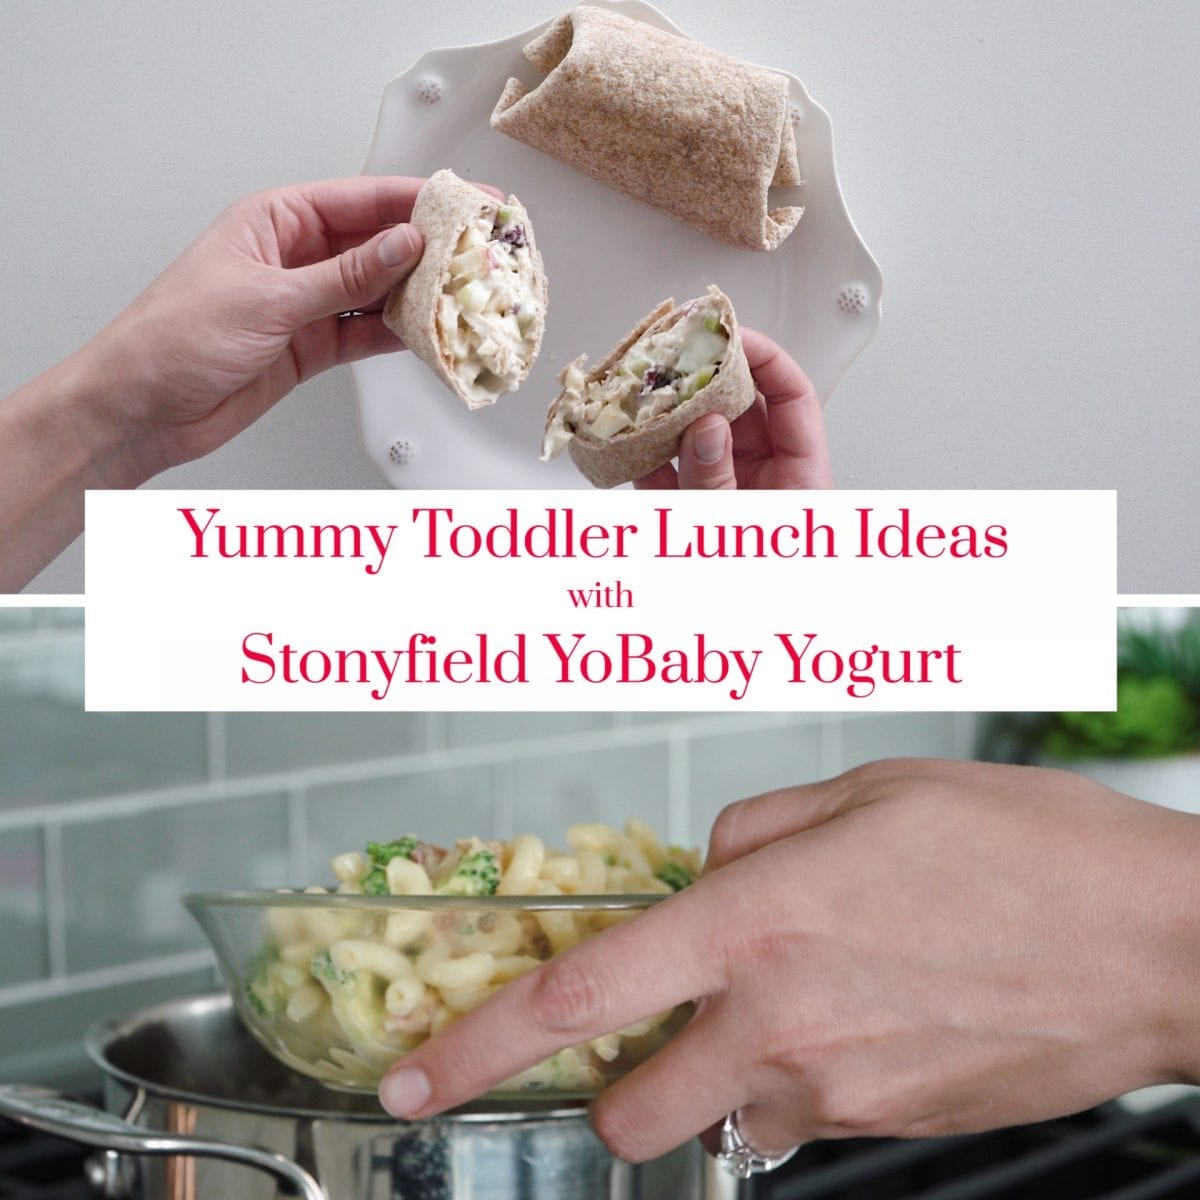 Two lunch recipes made with Stonyfield YoBaby yogurt